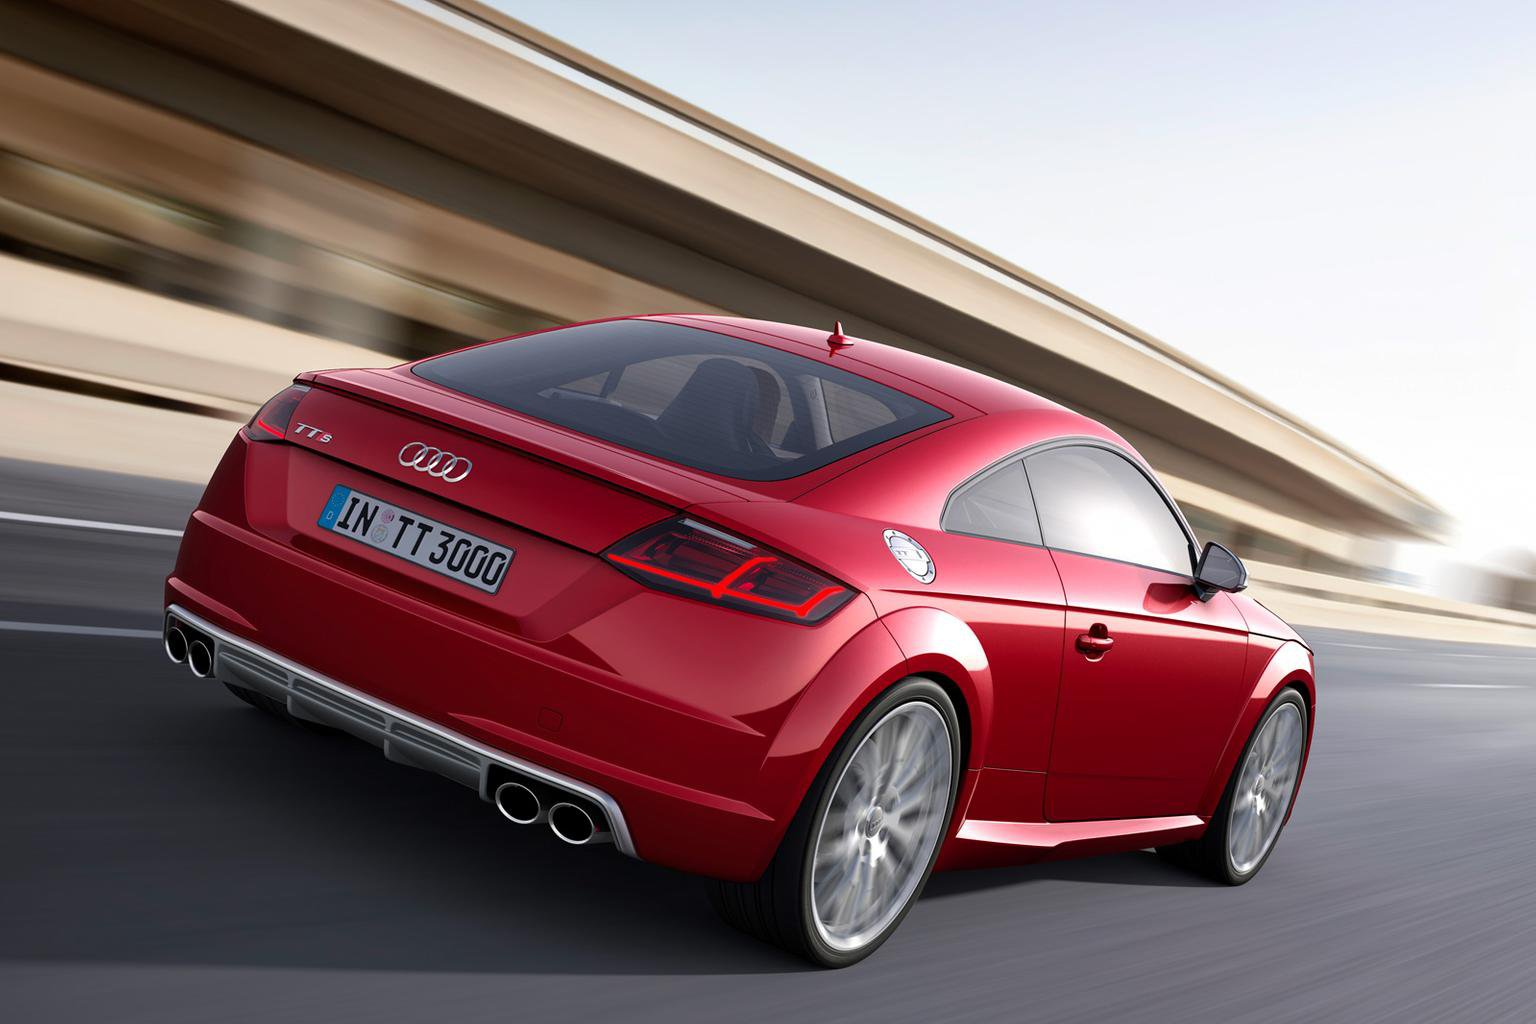 New Audi TT: All you need to know